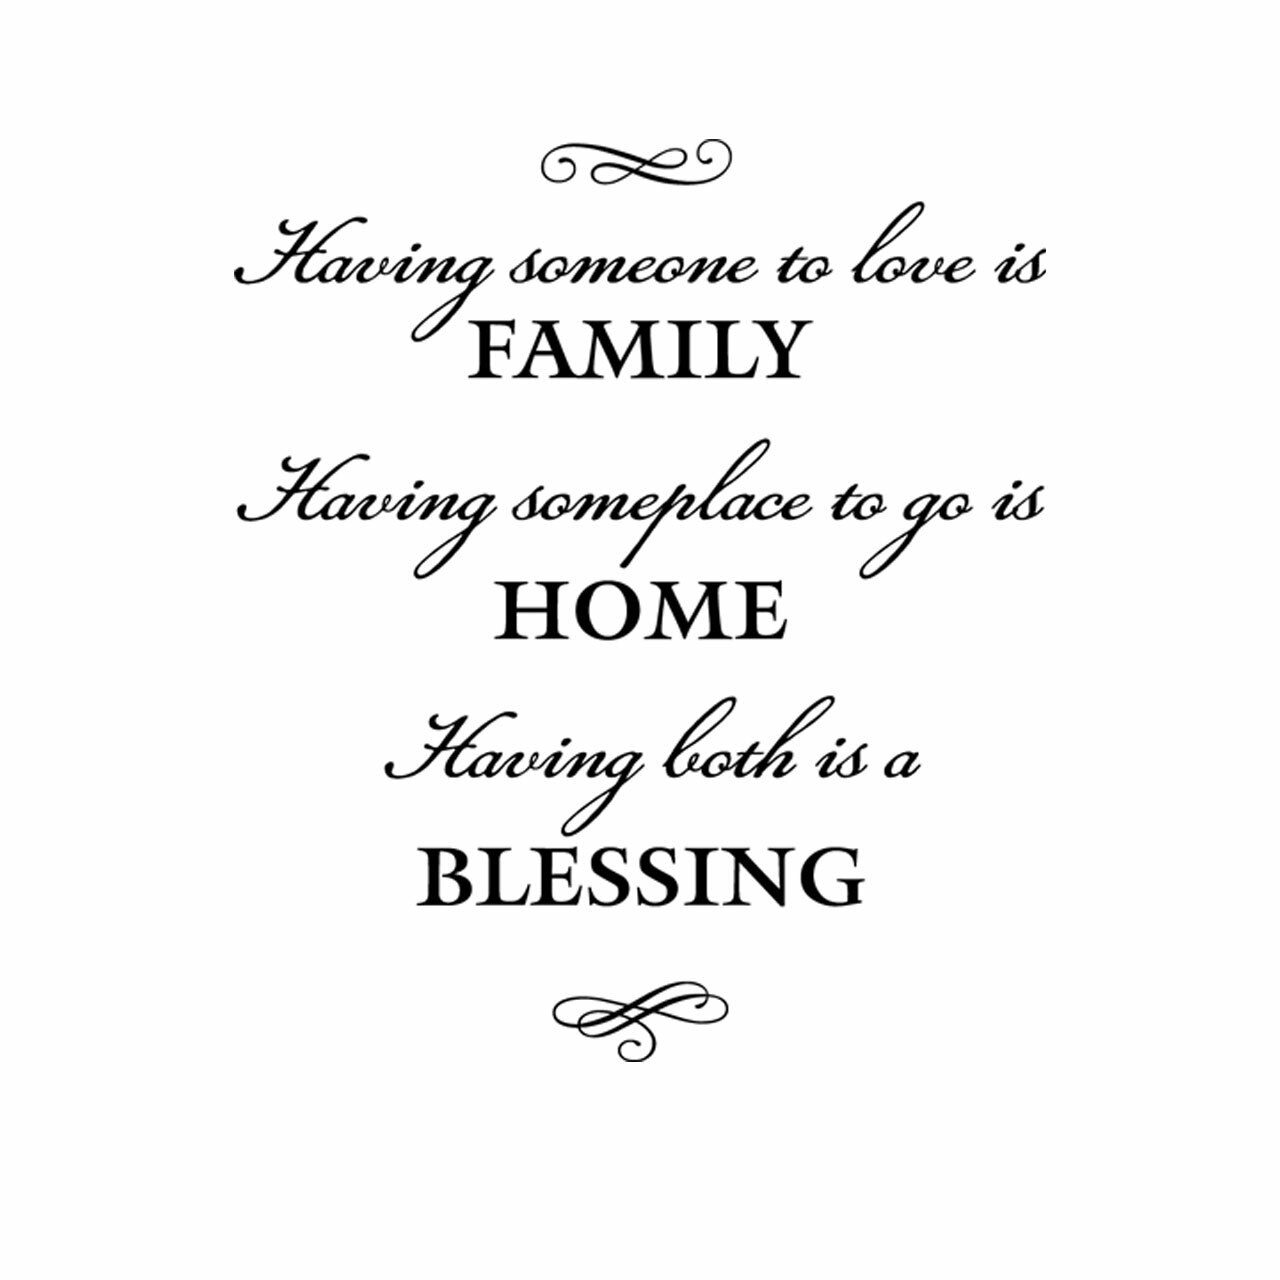 Having someone to love is family having somewhere to go is home having both is a blessing written in black on a white background